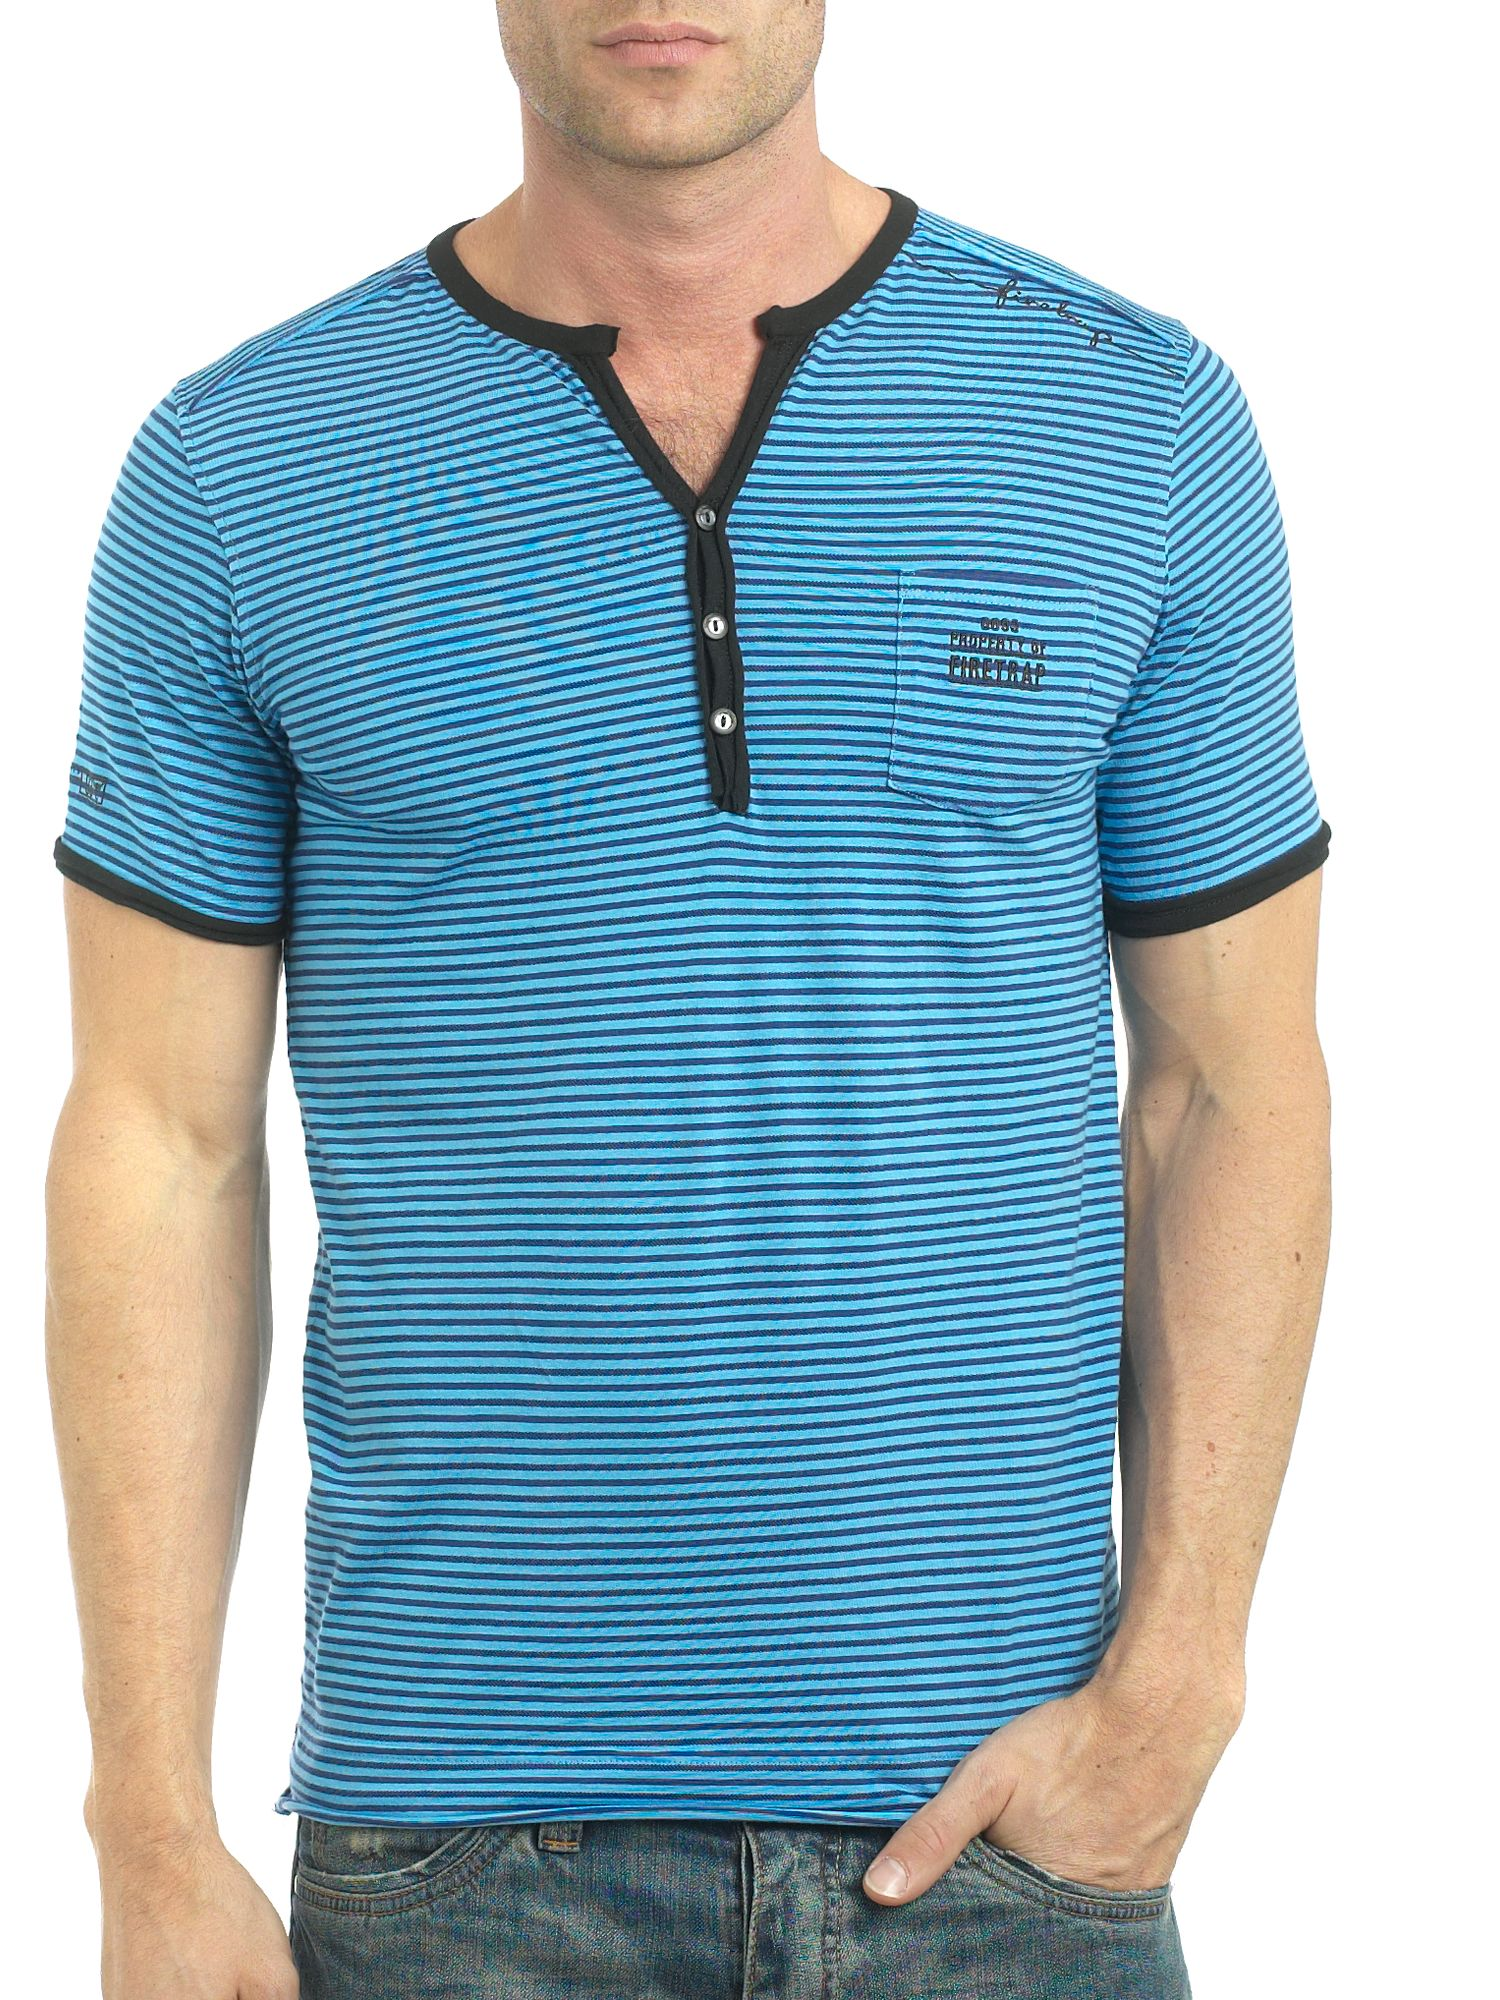 Firetrap Y neck stripe 1 pocket t-shirt product image